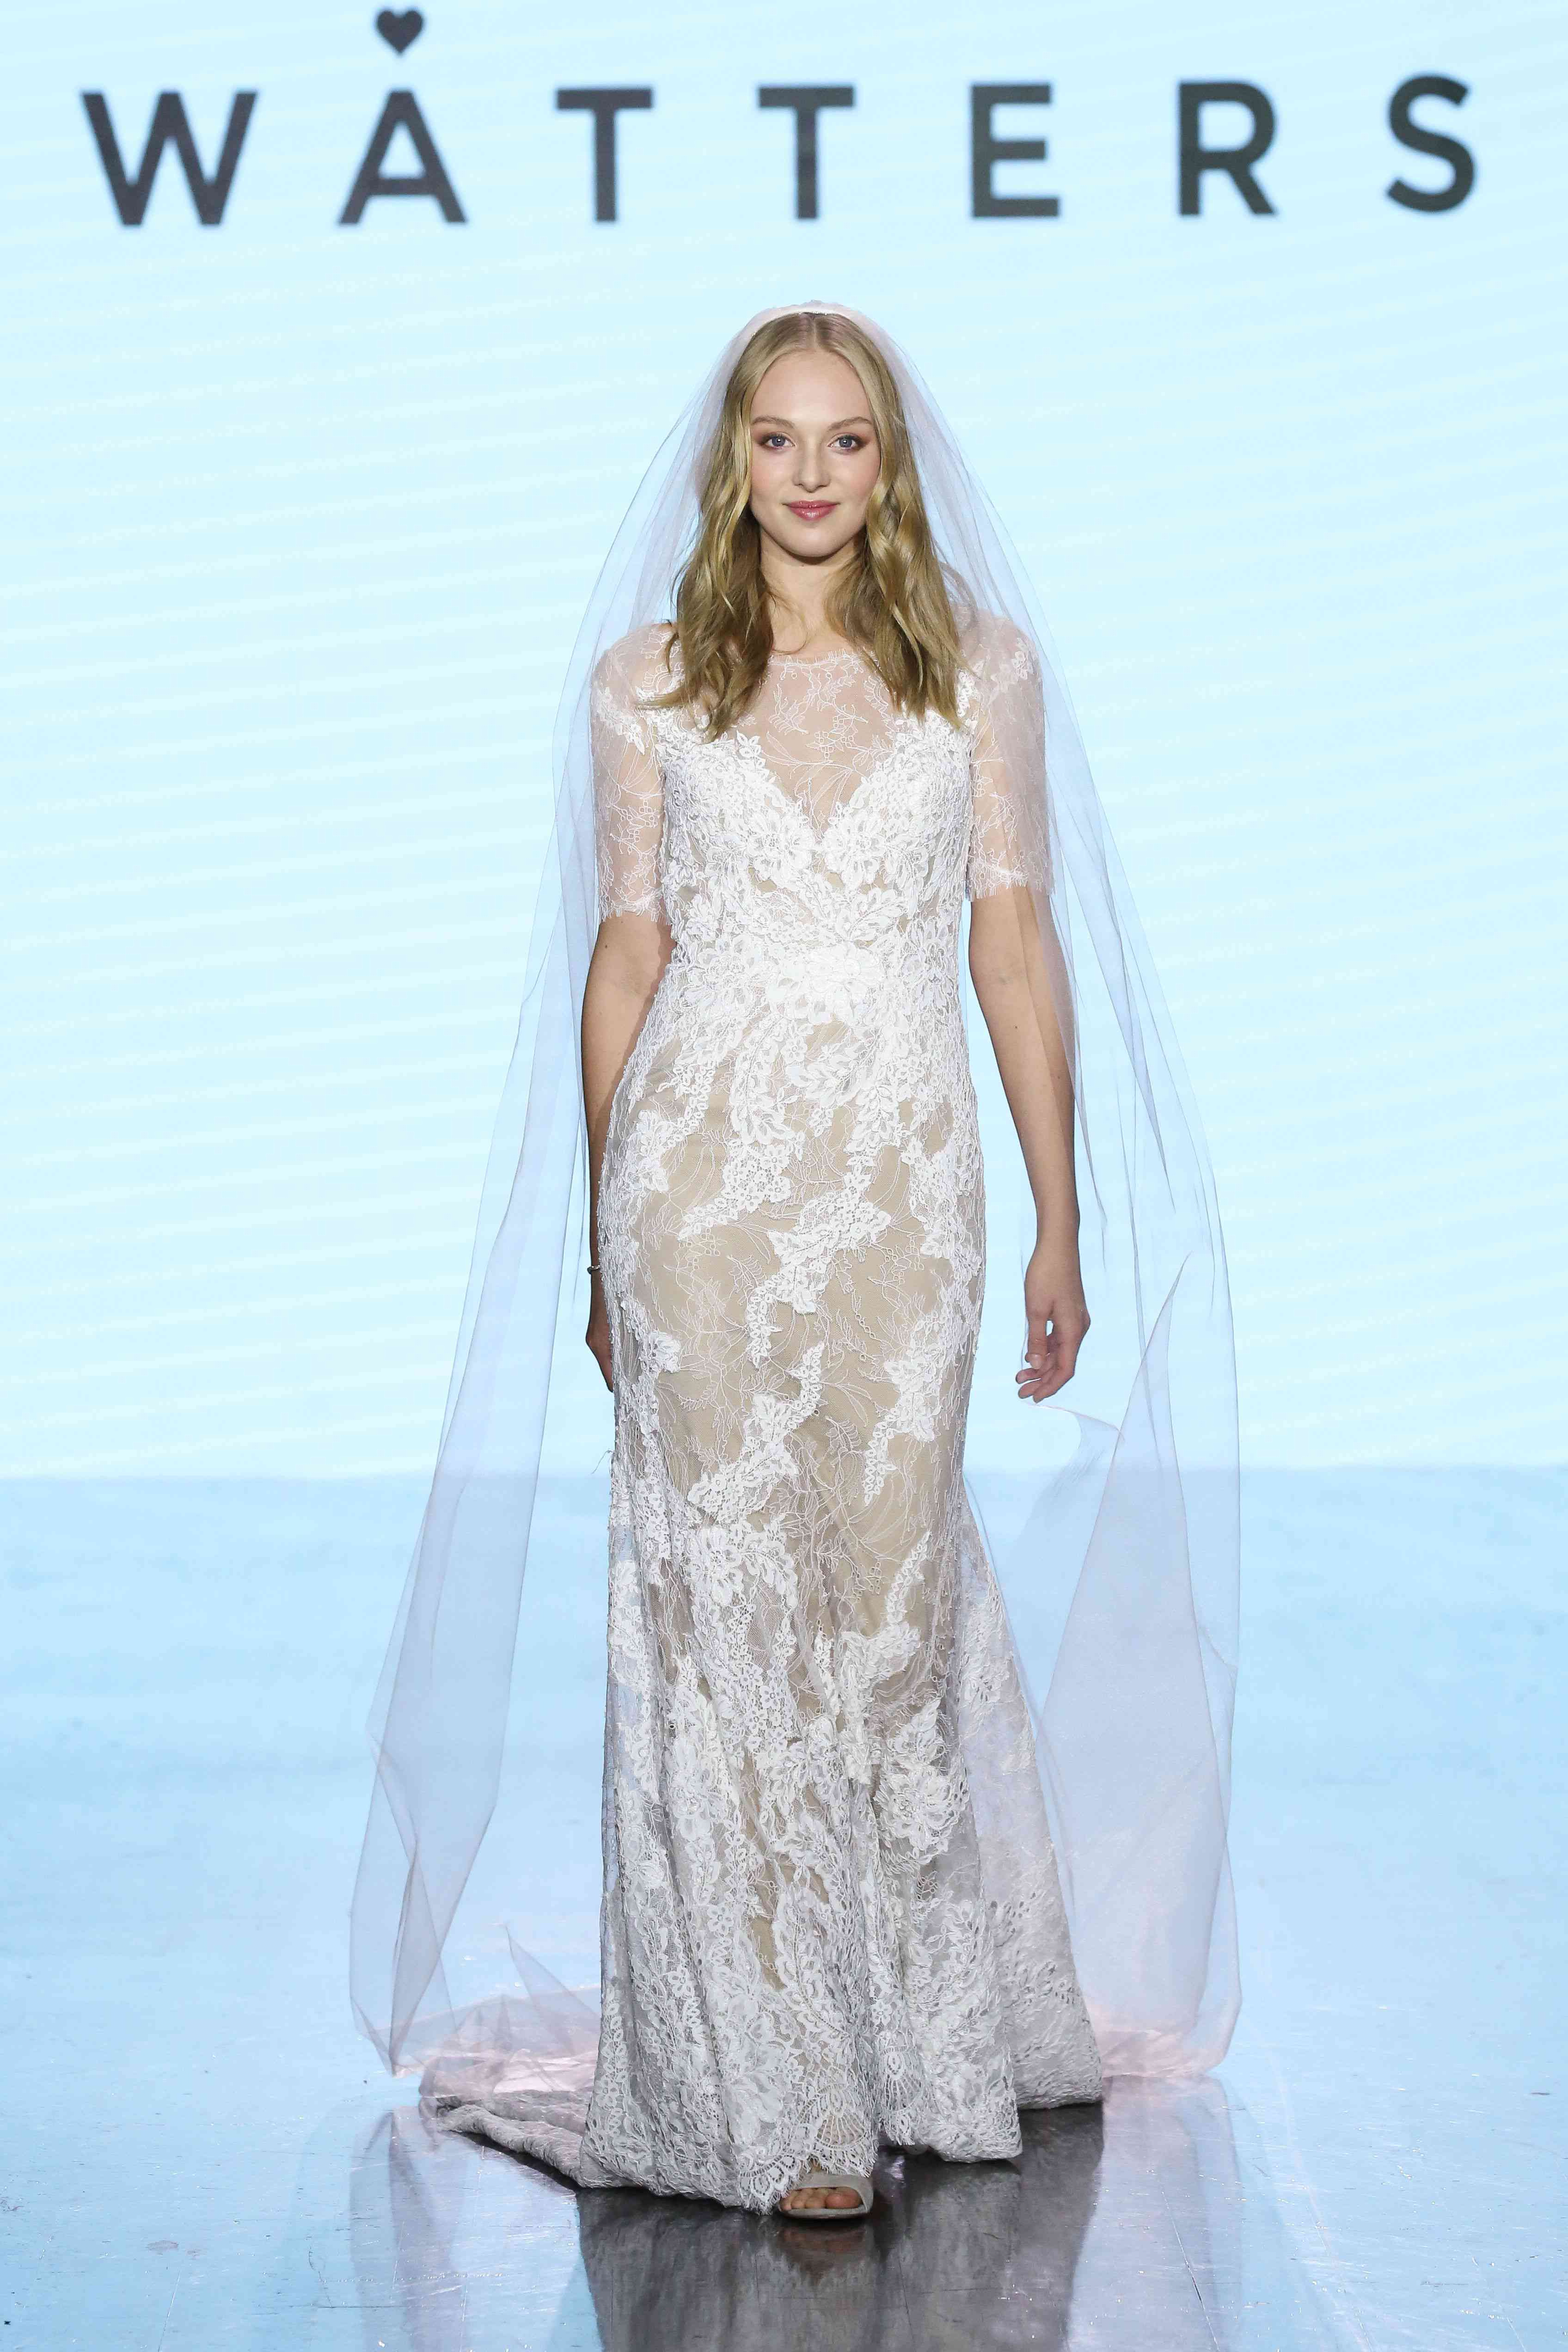 Model on runway in allover lace wedding gown with half sleeves